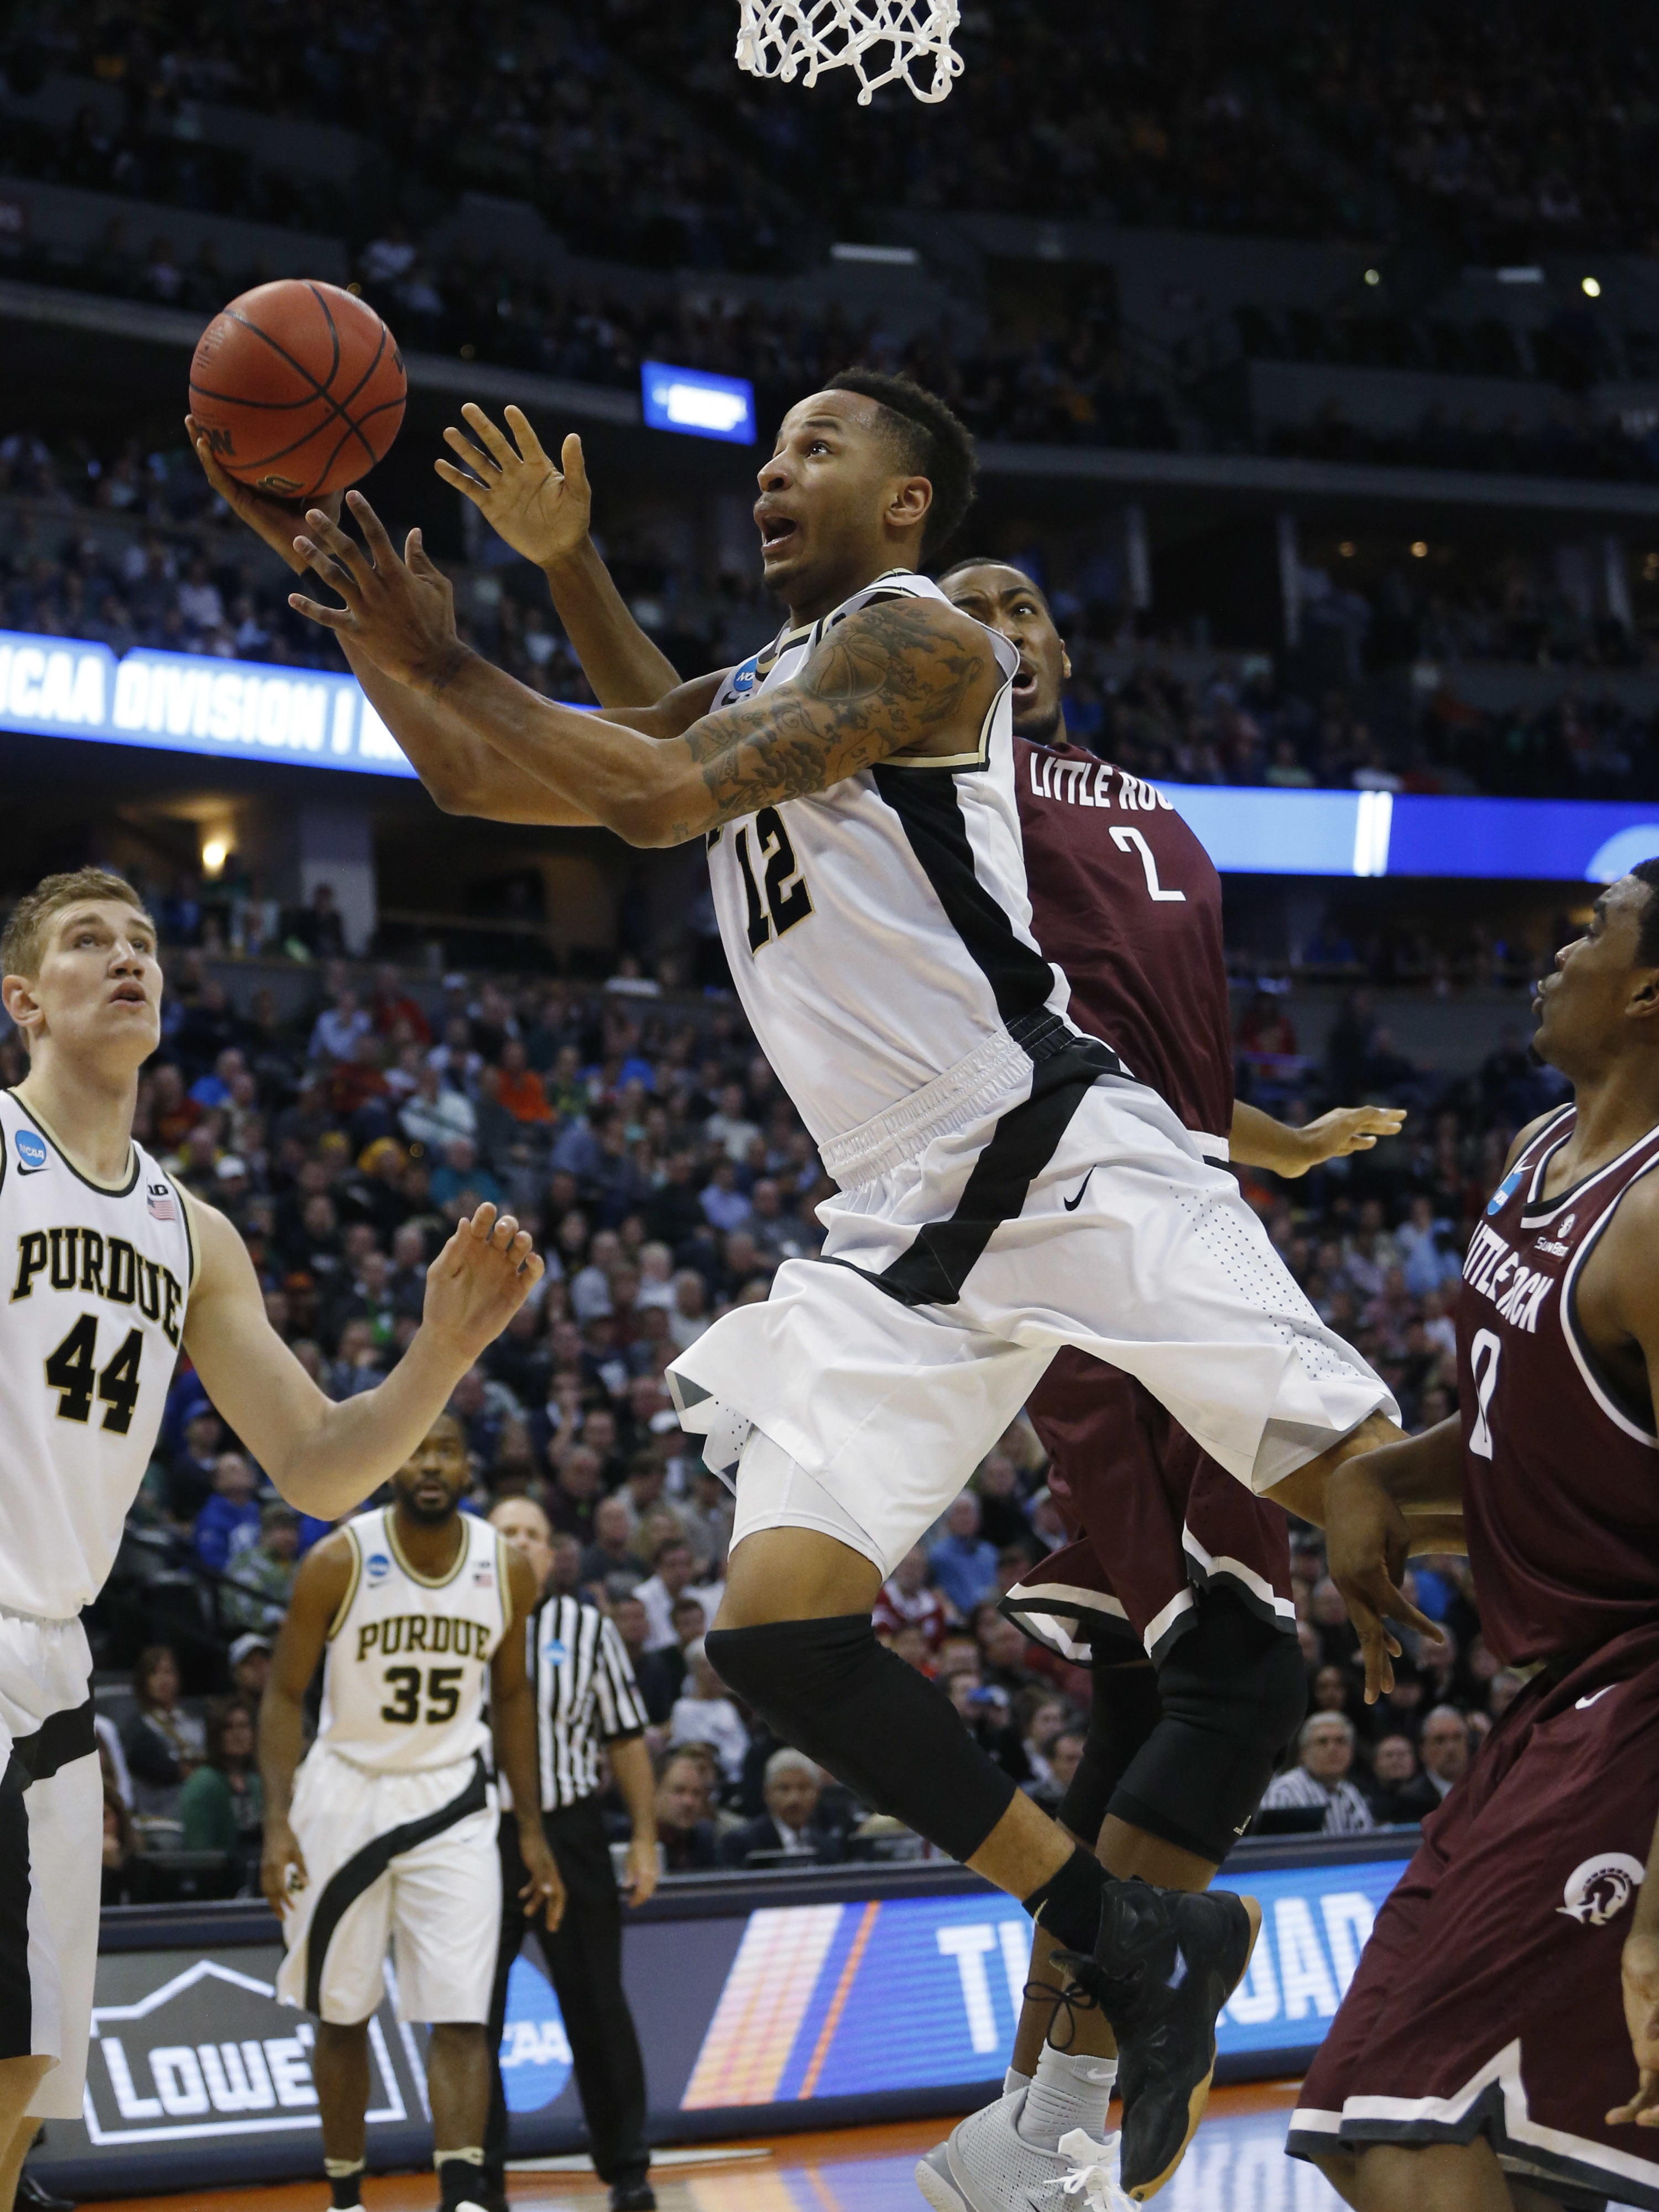 Purdue forward Vince Edwards, front, drives for a basket as Arkansas Little Rock forward Daniel Green defends in the first half of a first-round men's college basketball game Thursday, March 17, 2016, in the NCAA Tournament in Denver. (AP Photo/Brennan Li